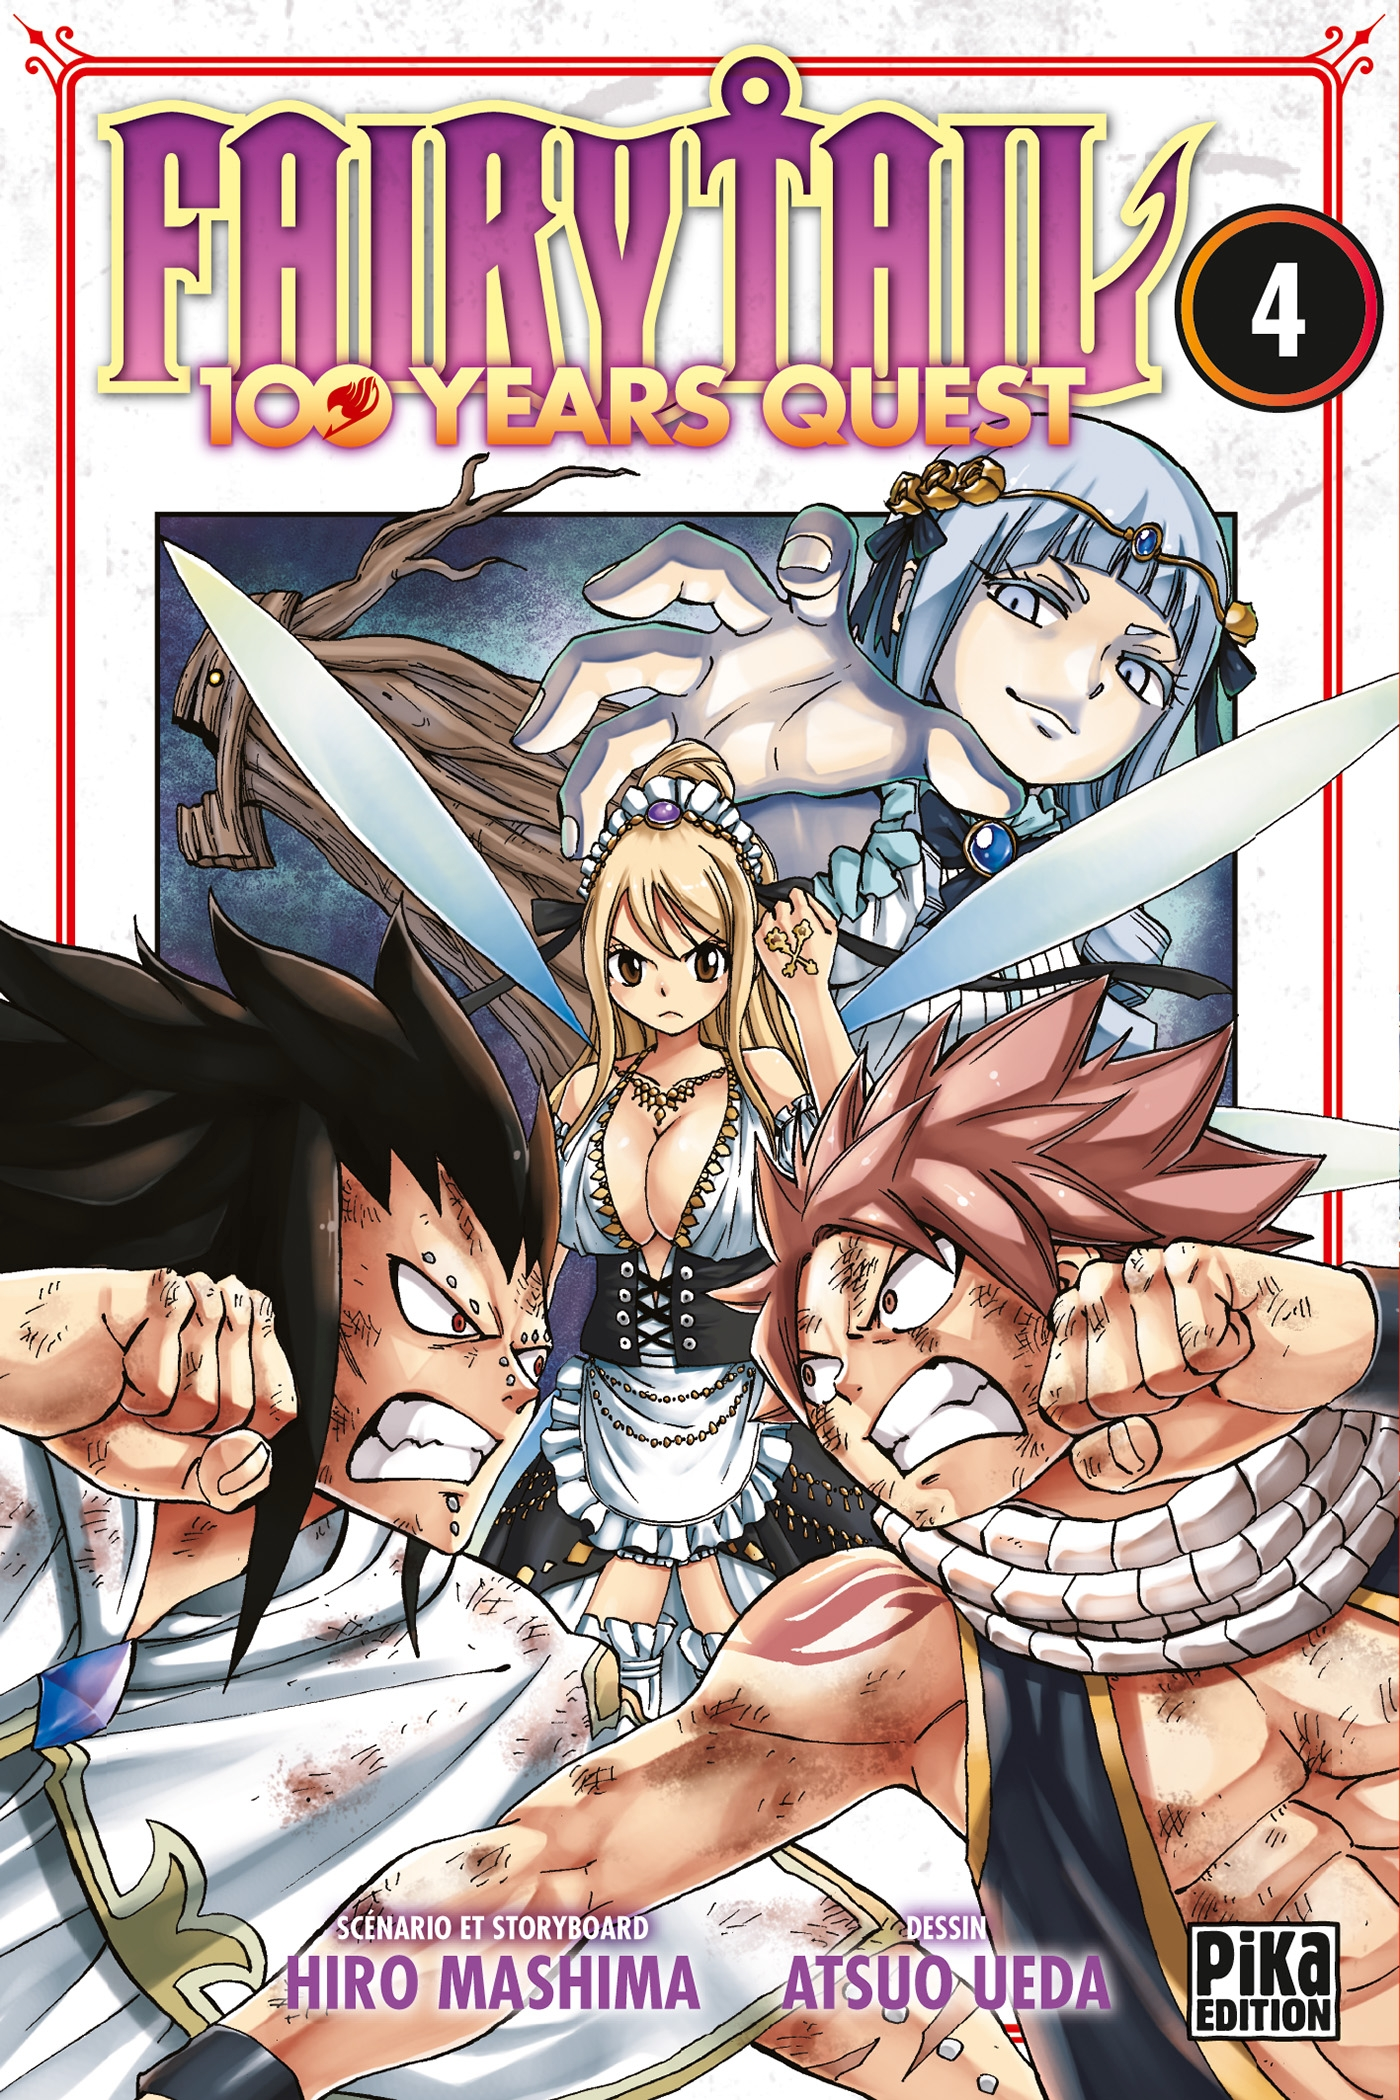 Fairy Tail 100 years quest 4